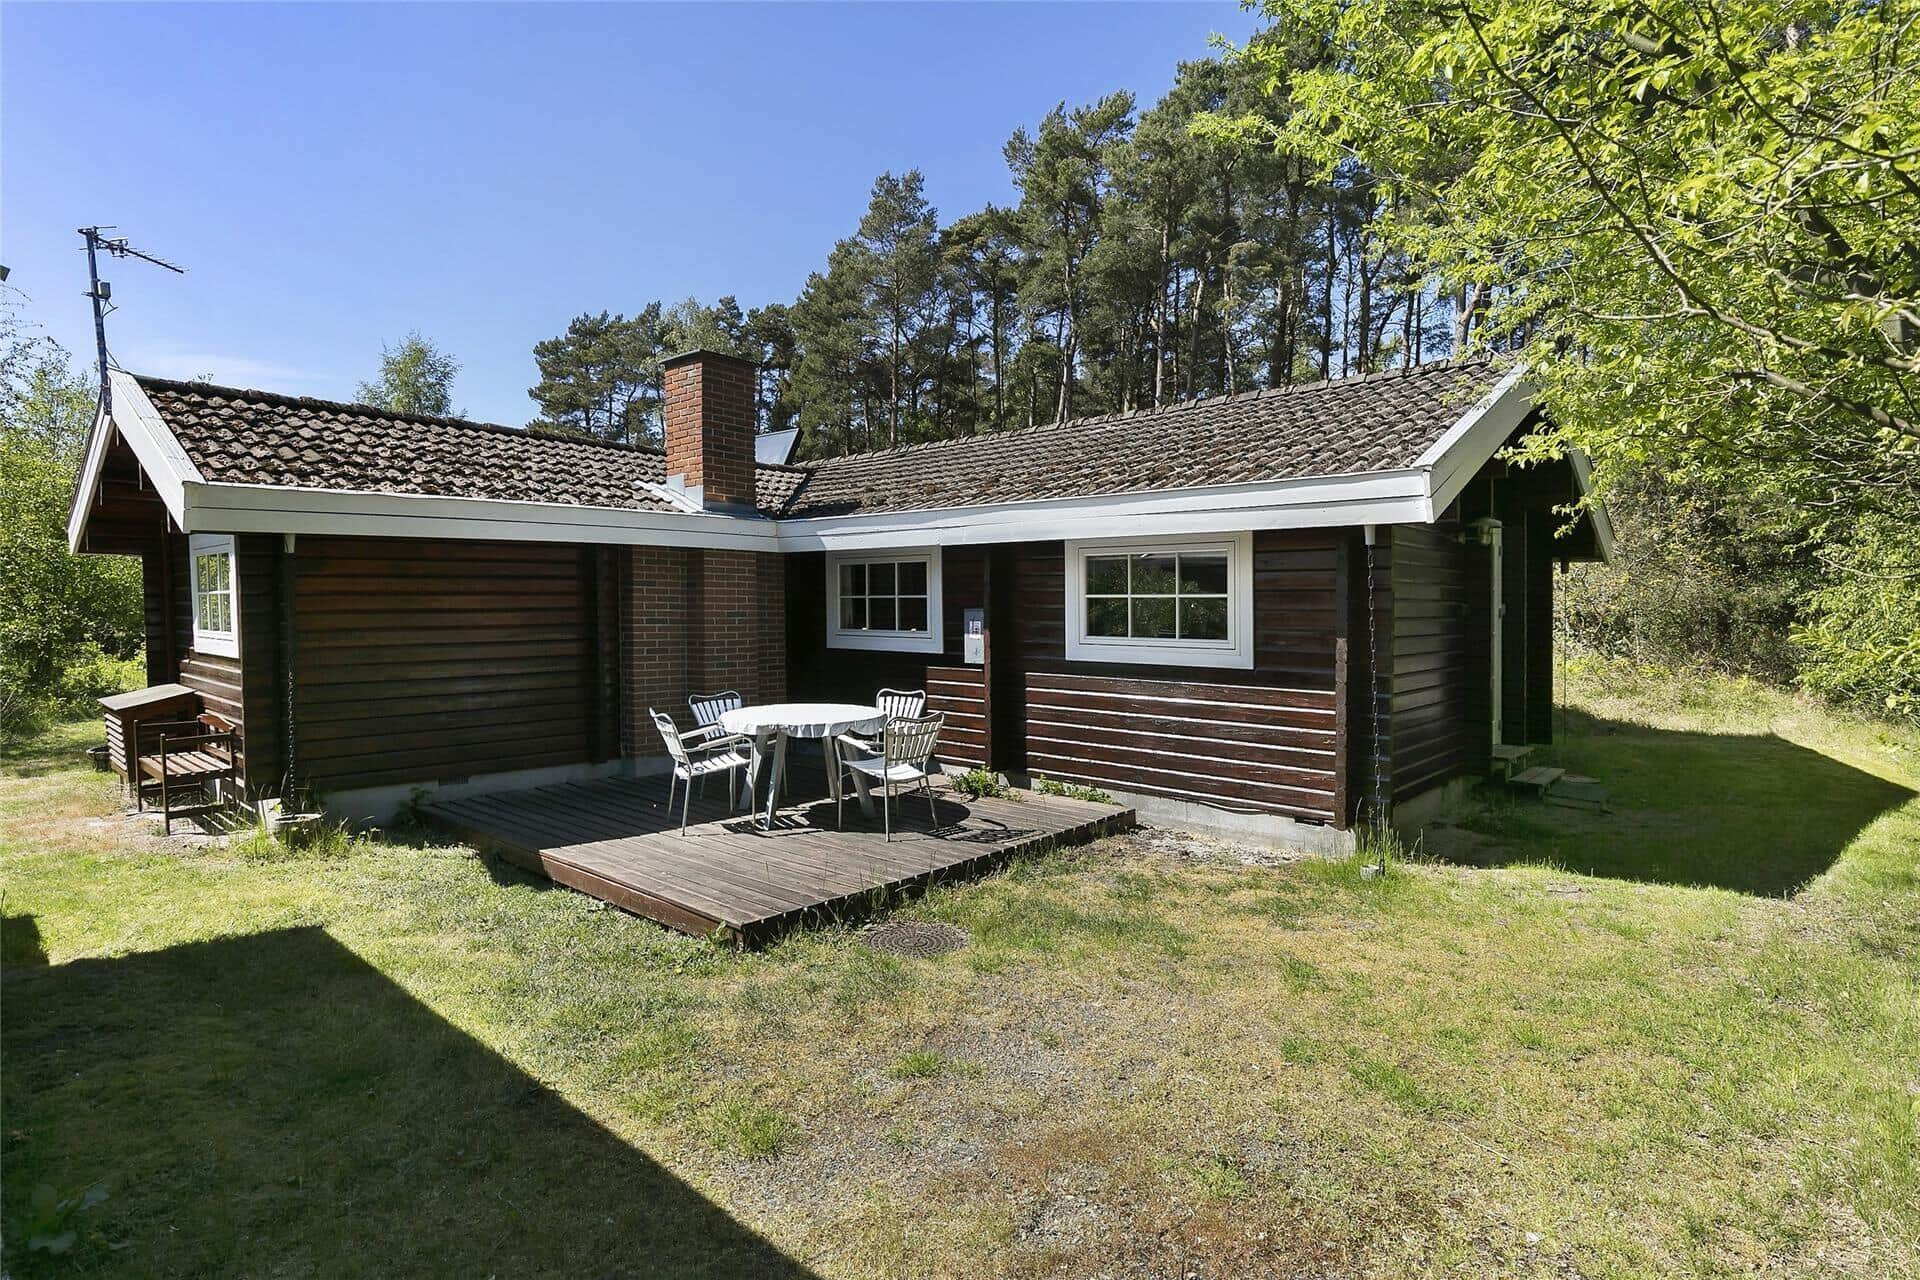 Image 1-10 Holiday-home 1540, Poserekrogen 57, DK - 3720 Aakirkeby